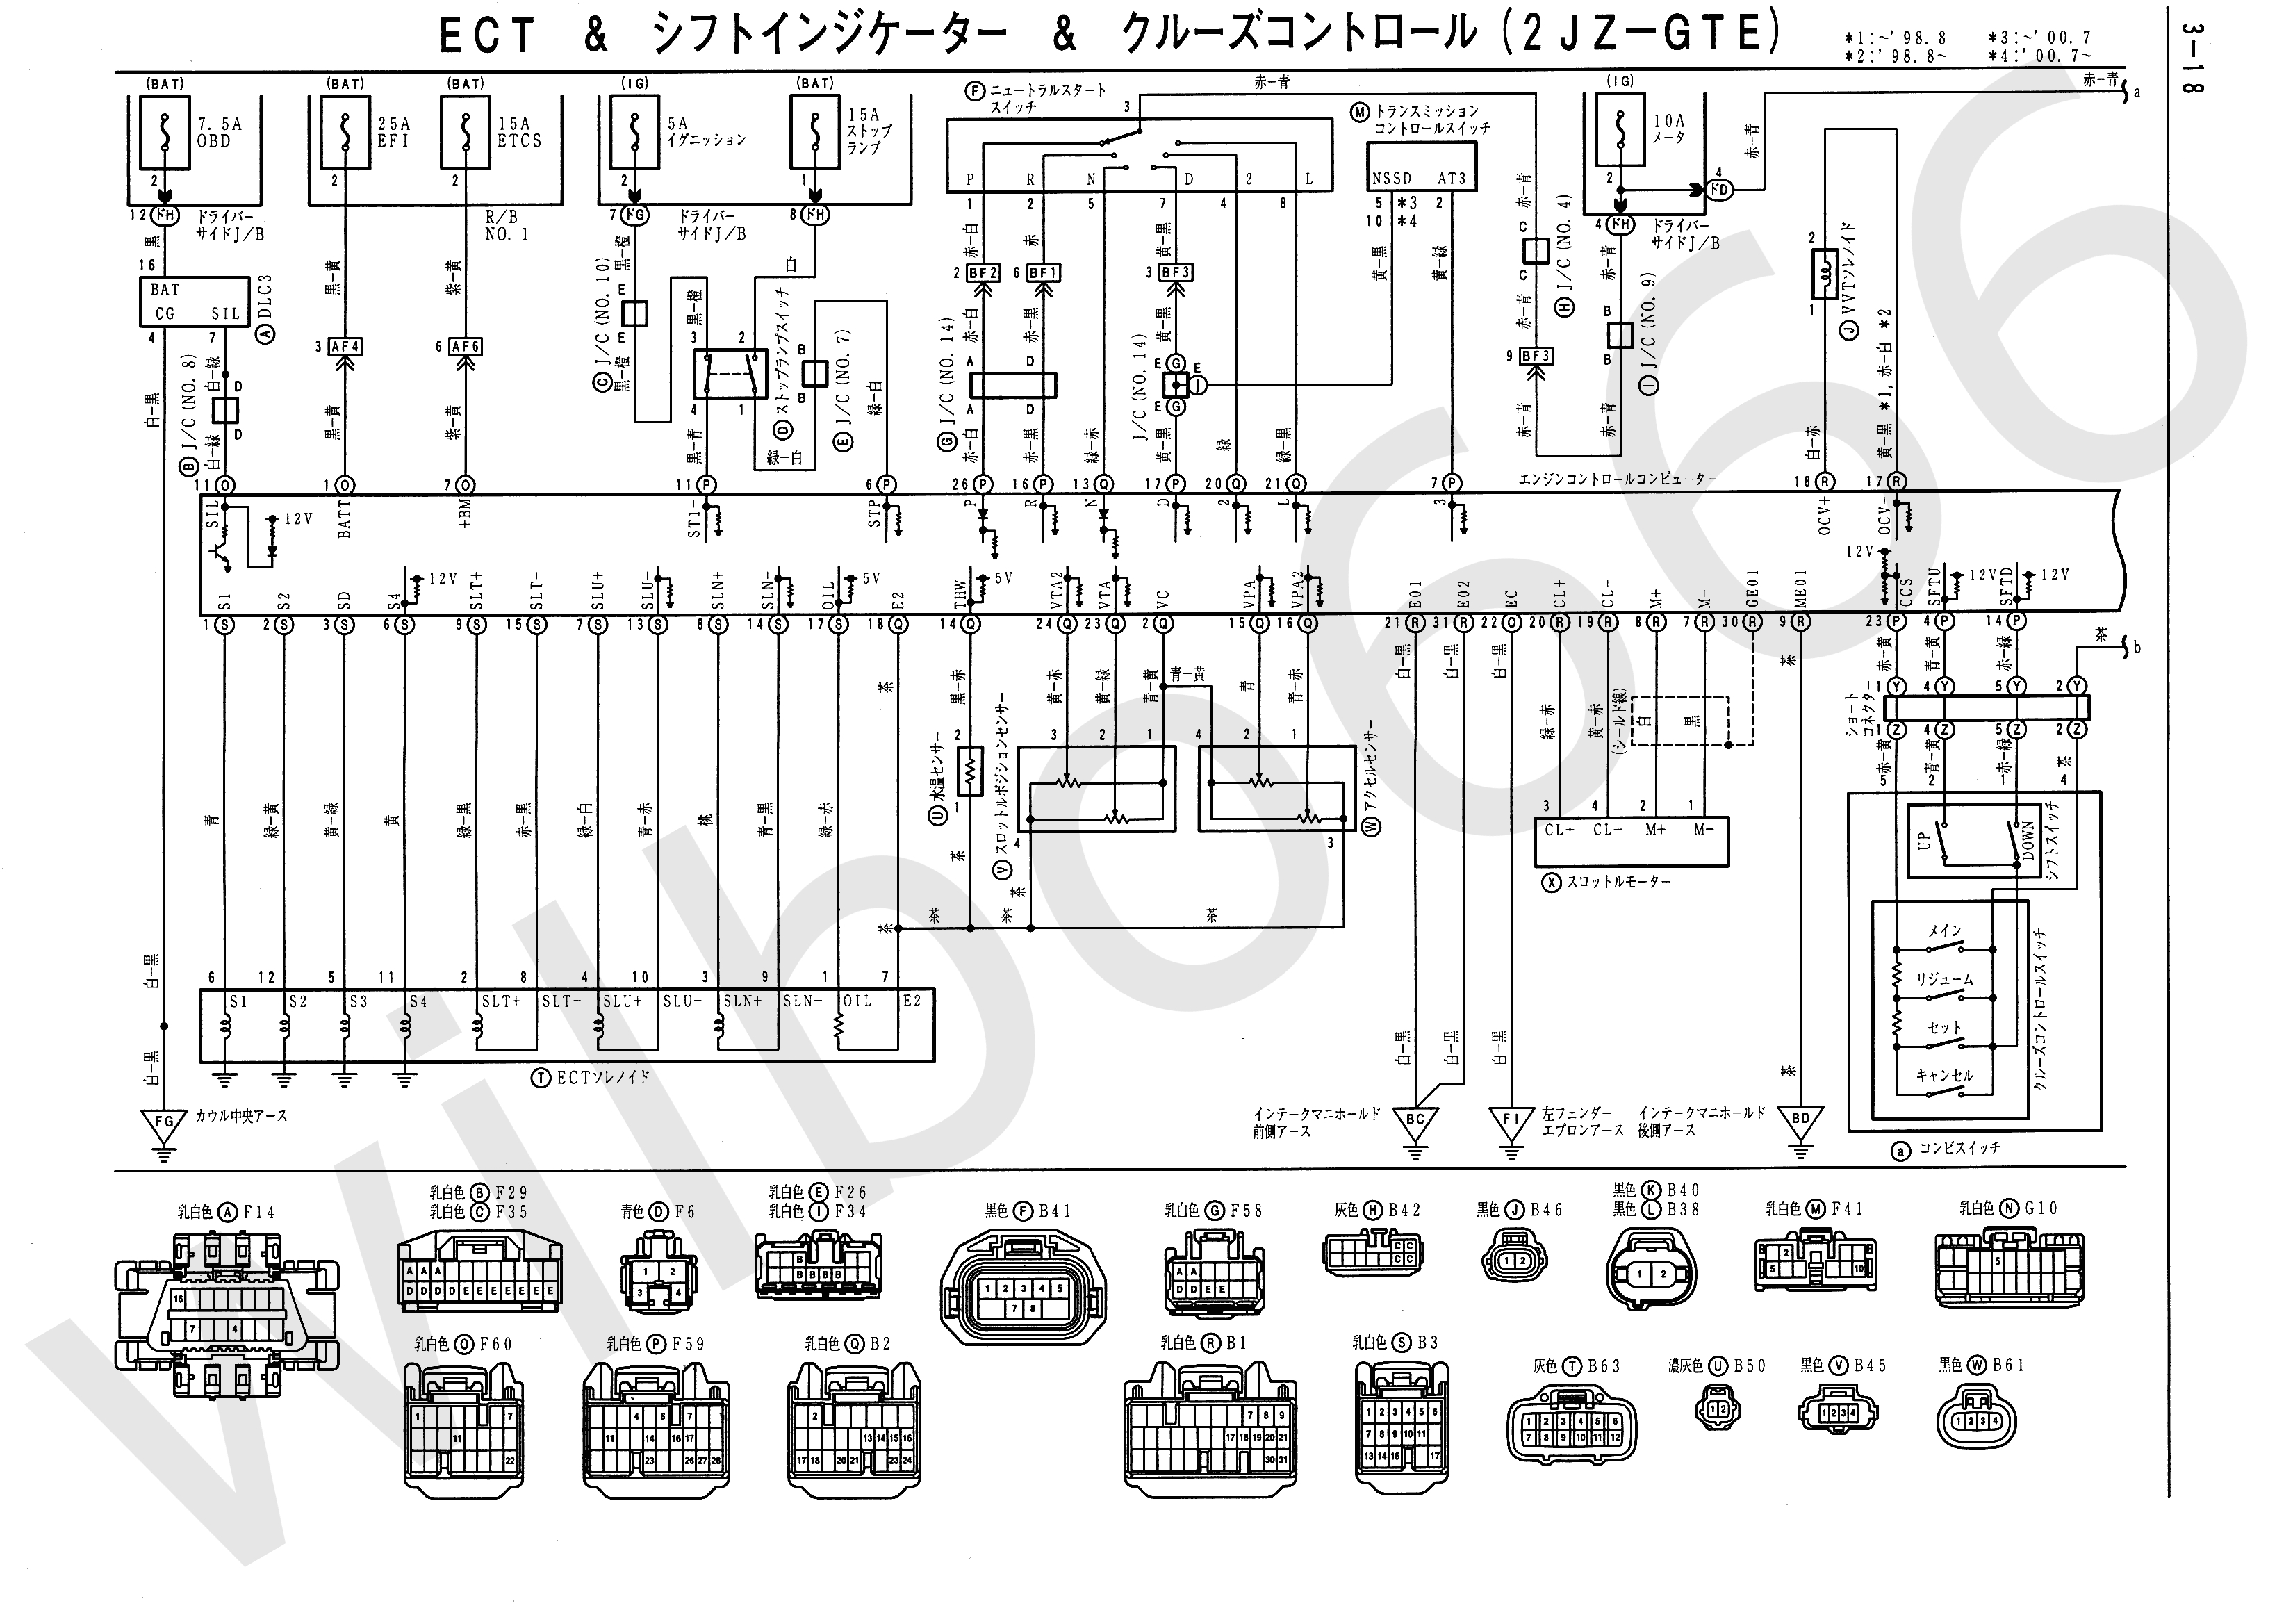 Diagram Dvi Connector Pinout Wiring Diagram Full Version